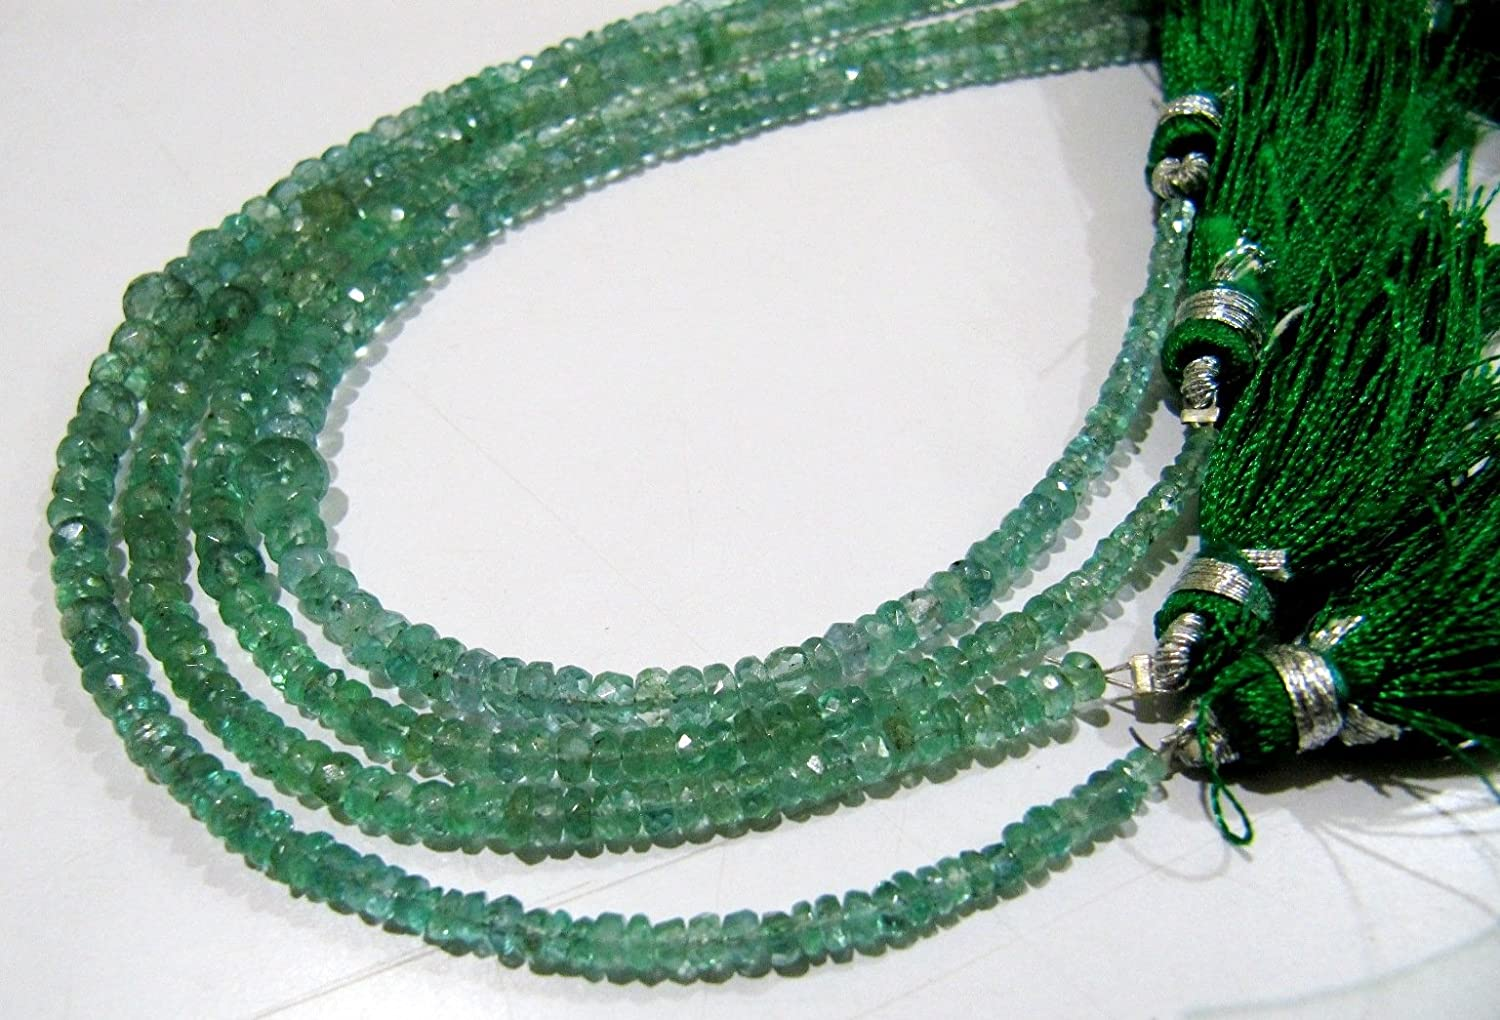 Green Emerald Gemstone Round Beads Jewellery Necklace 20 inch Huge 12mm AAA